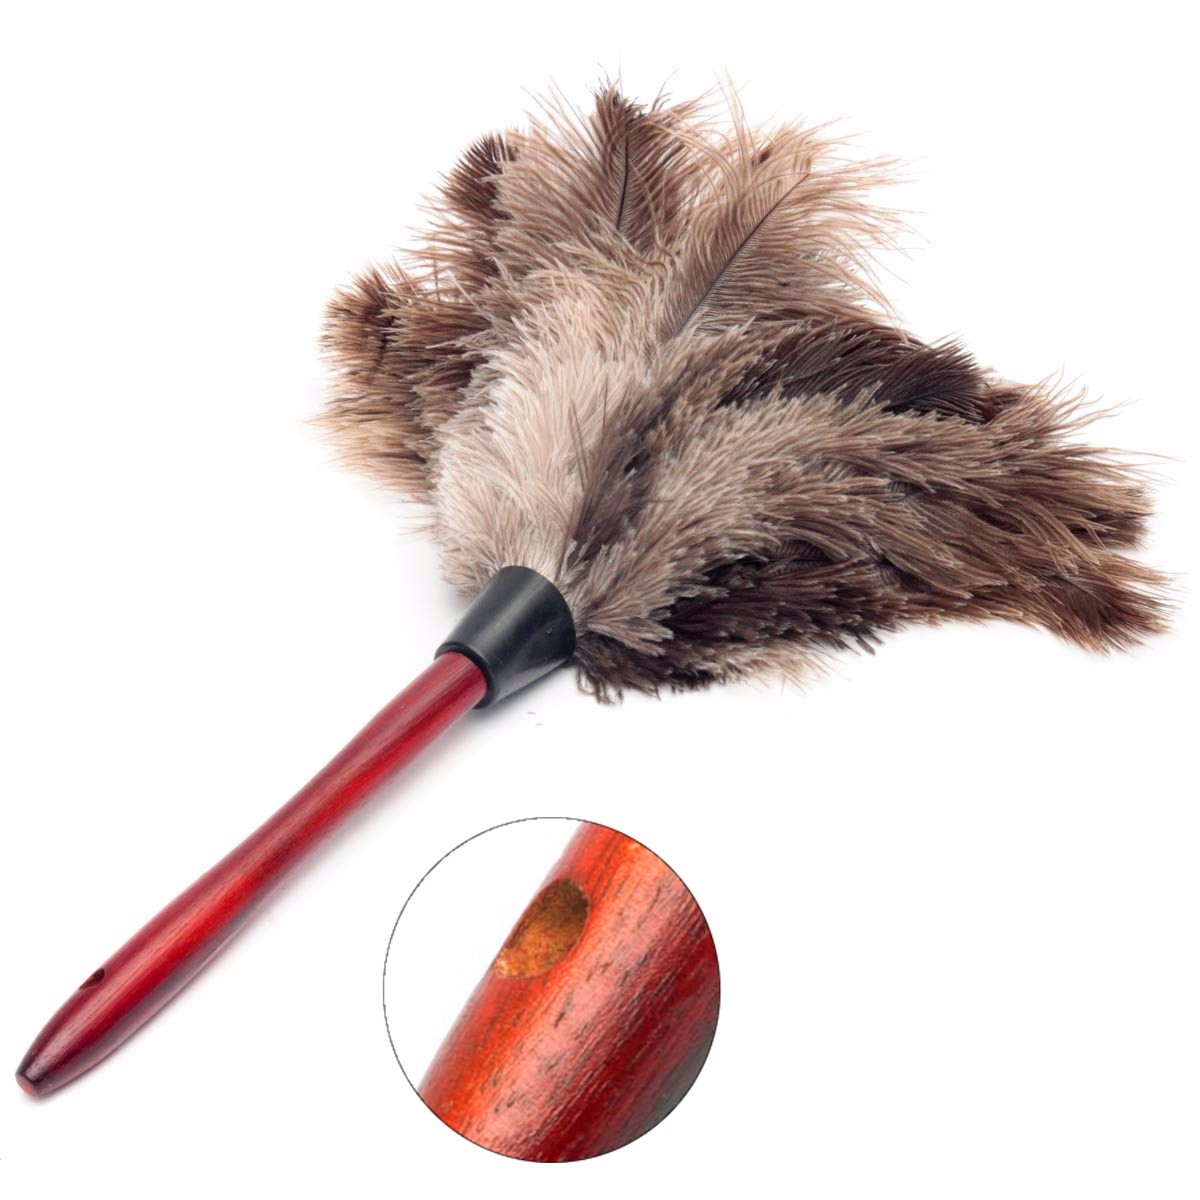 20cm Ostrich Feather Home Cleaning Duster Brush Wood